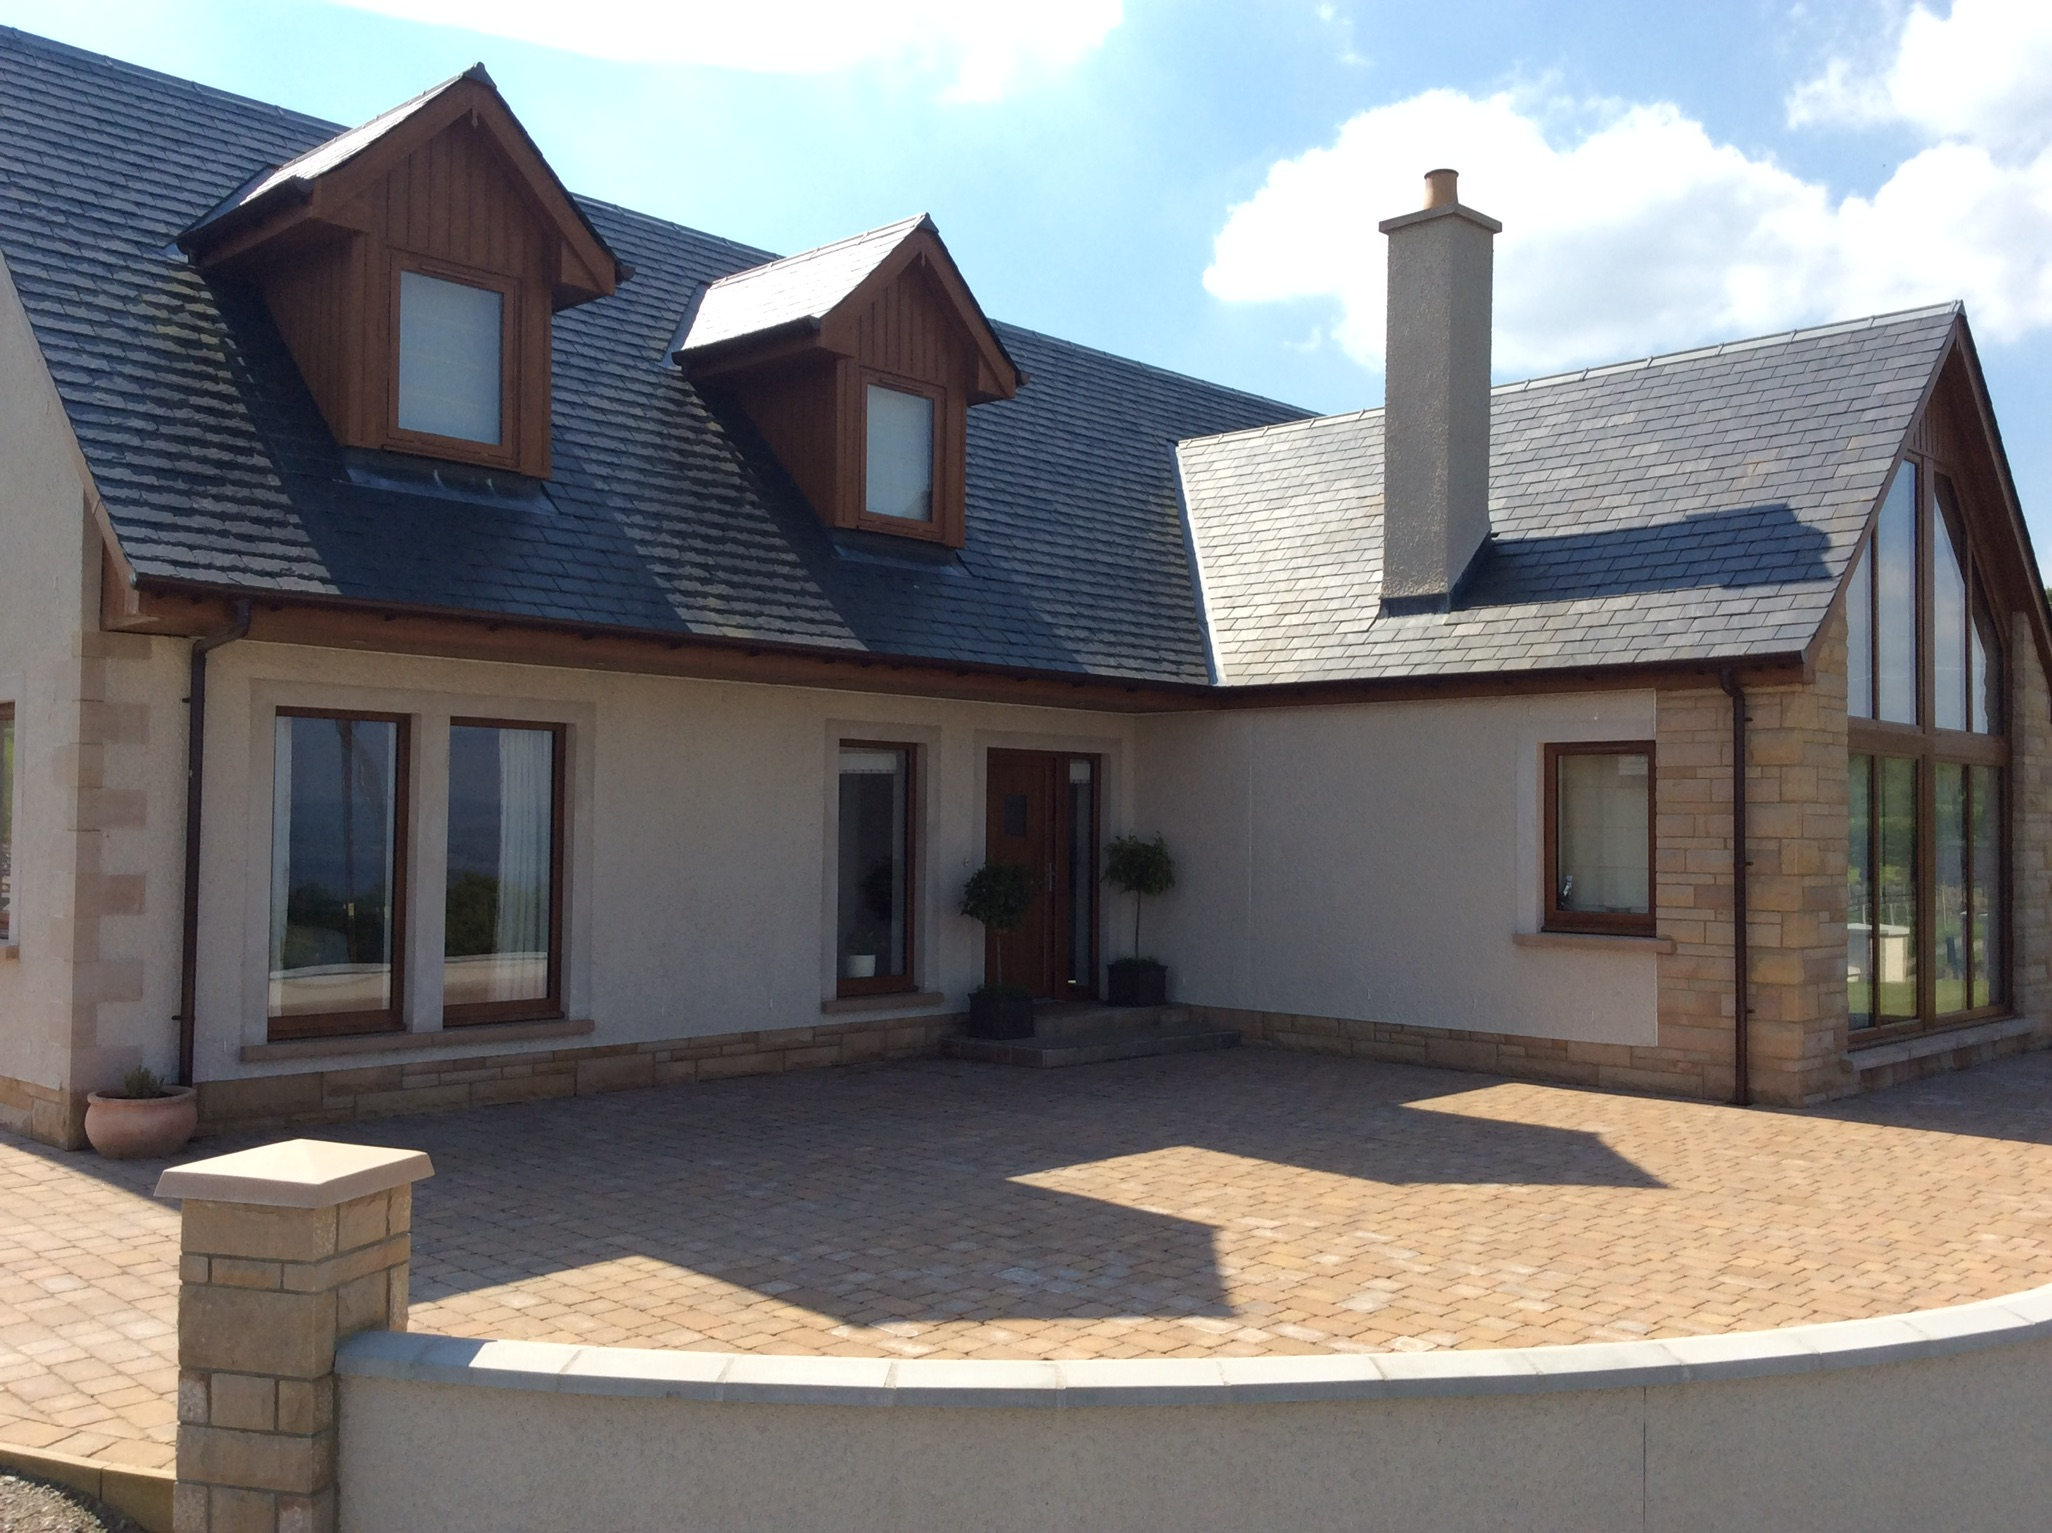 Norman Macleod Roofing Inverness Roofer Roofing Contractor